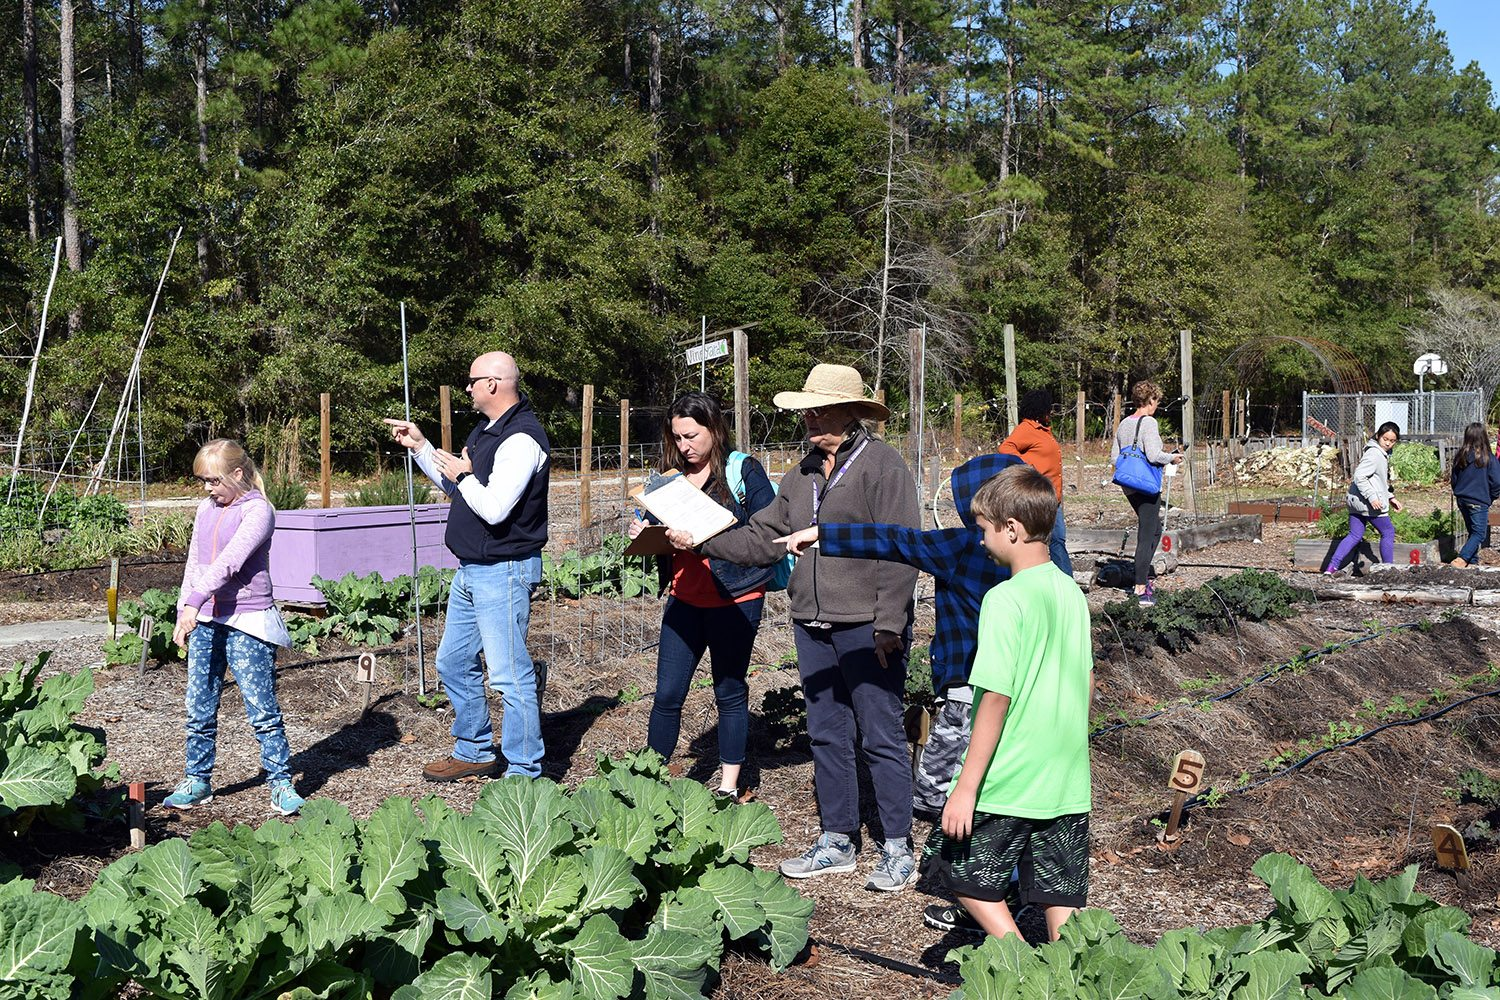 Kids go on a scavenger hunt in a vegetable garden.